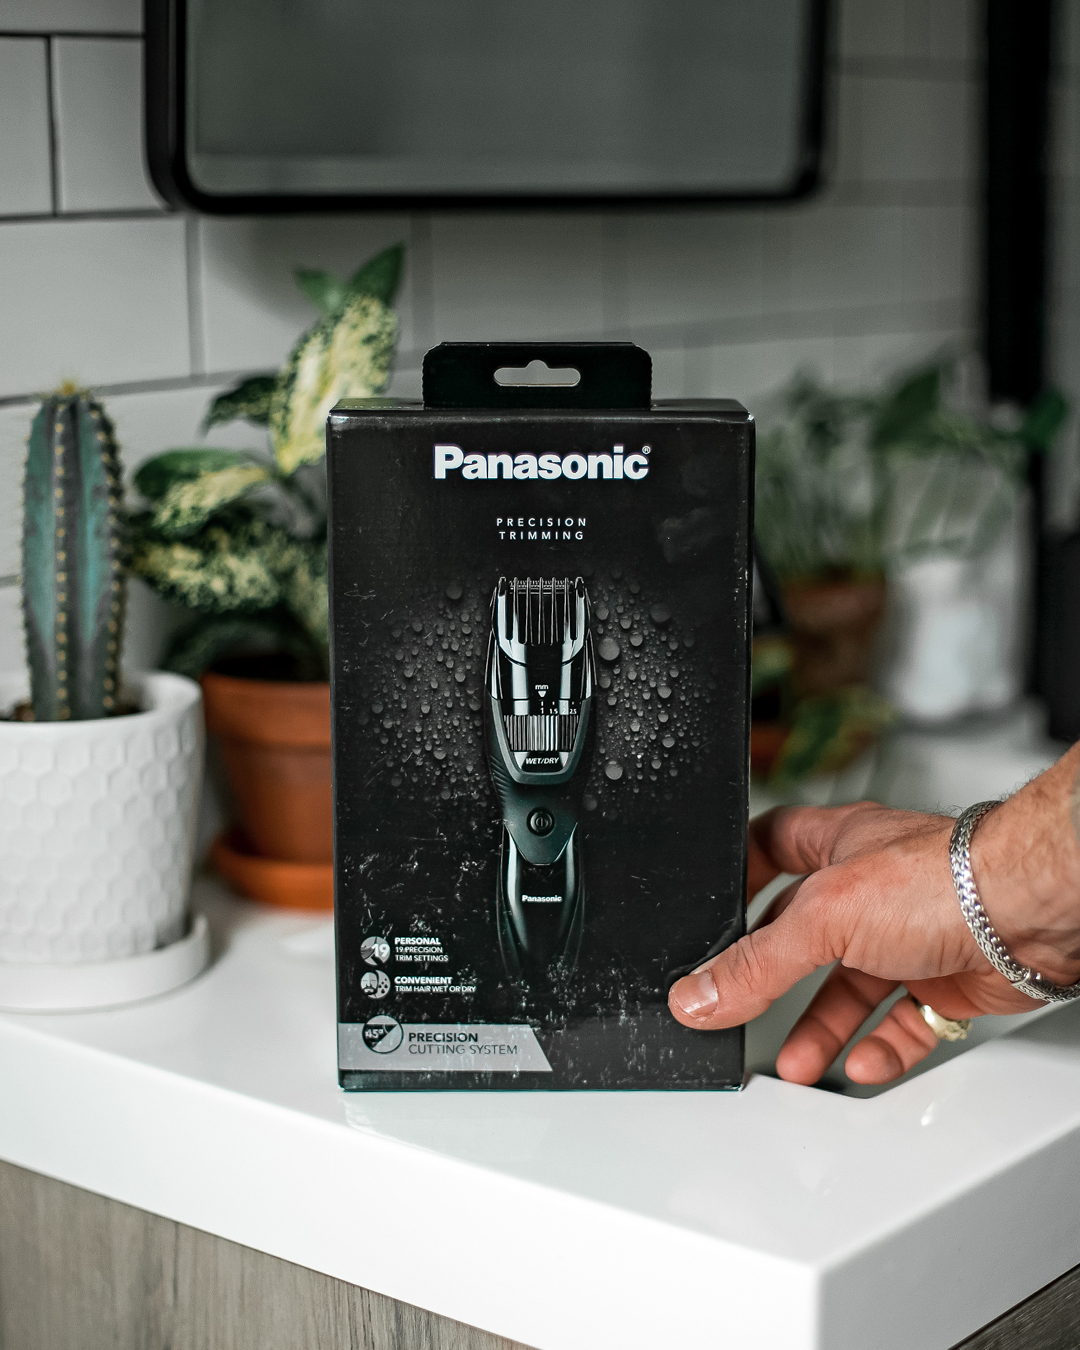 Panasonic Precision Wet/Dry Beard & Hair Trimmer Review